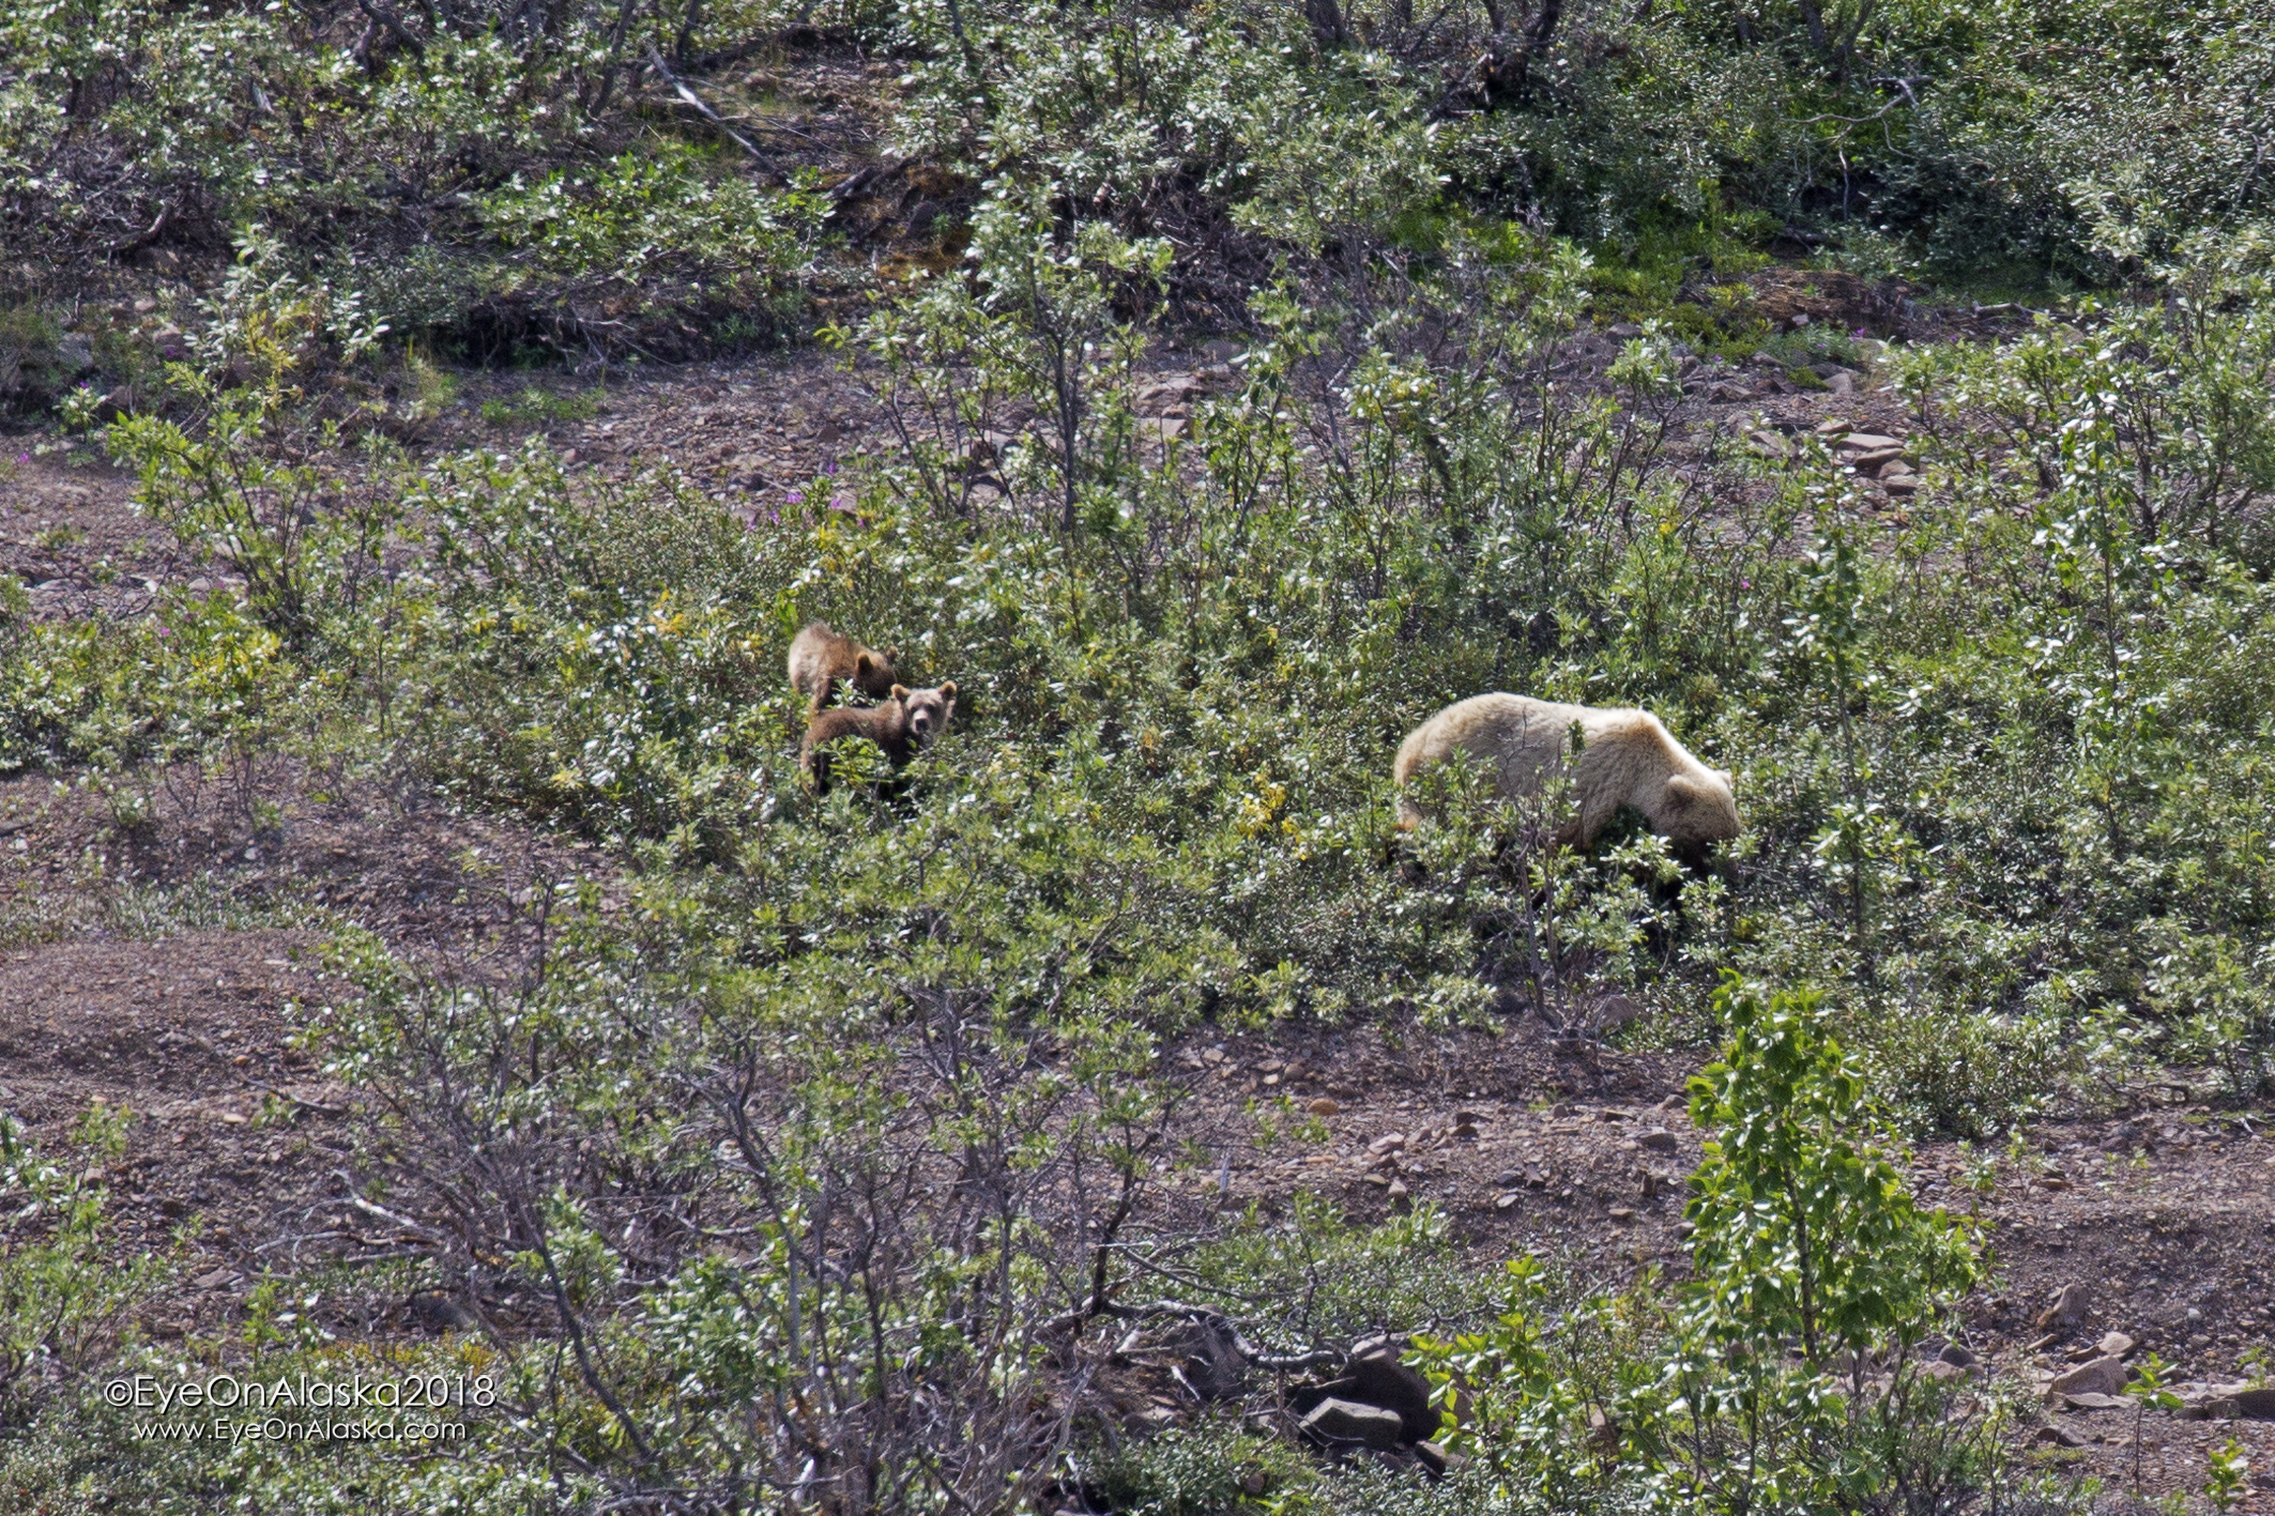 A sow with 2 Spring Cubs above the Toklat River.  We saw 3 different sows with Spring Cubs this year.  Hopefully they all survive the coming year to keep the population healthy.